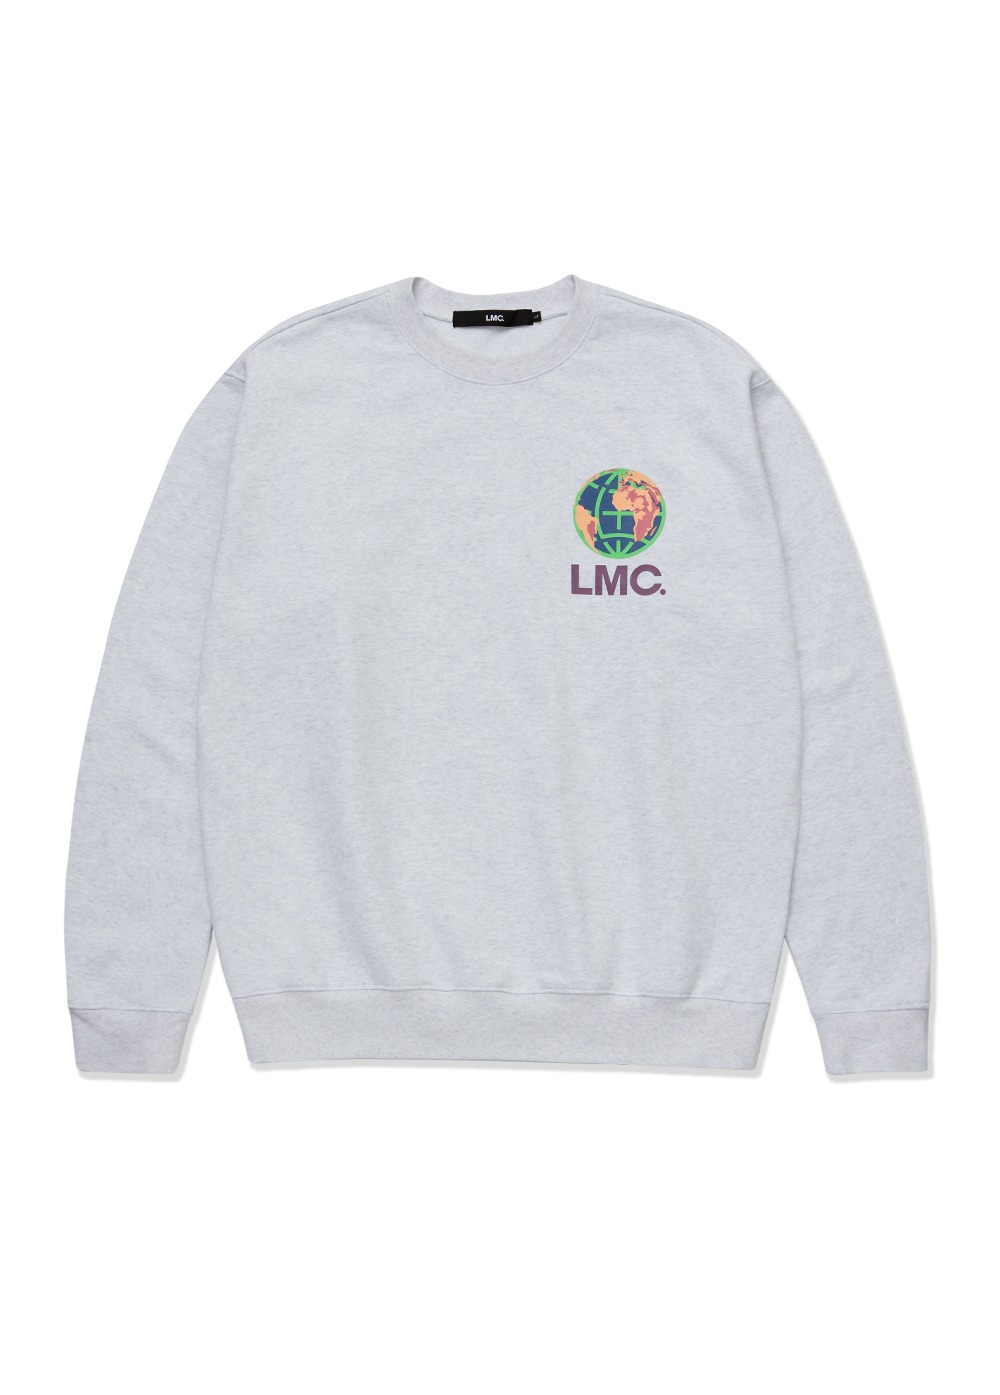 LMC CAMPAIGN EARTH SWEATSHIRT lt. heather gray